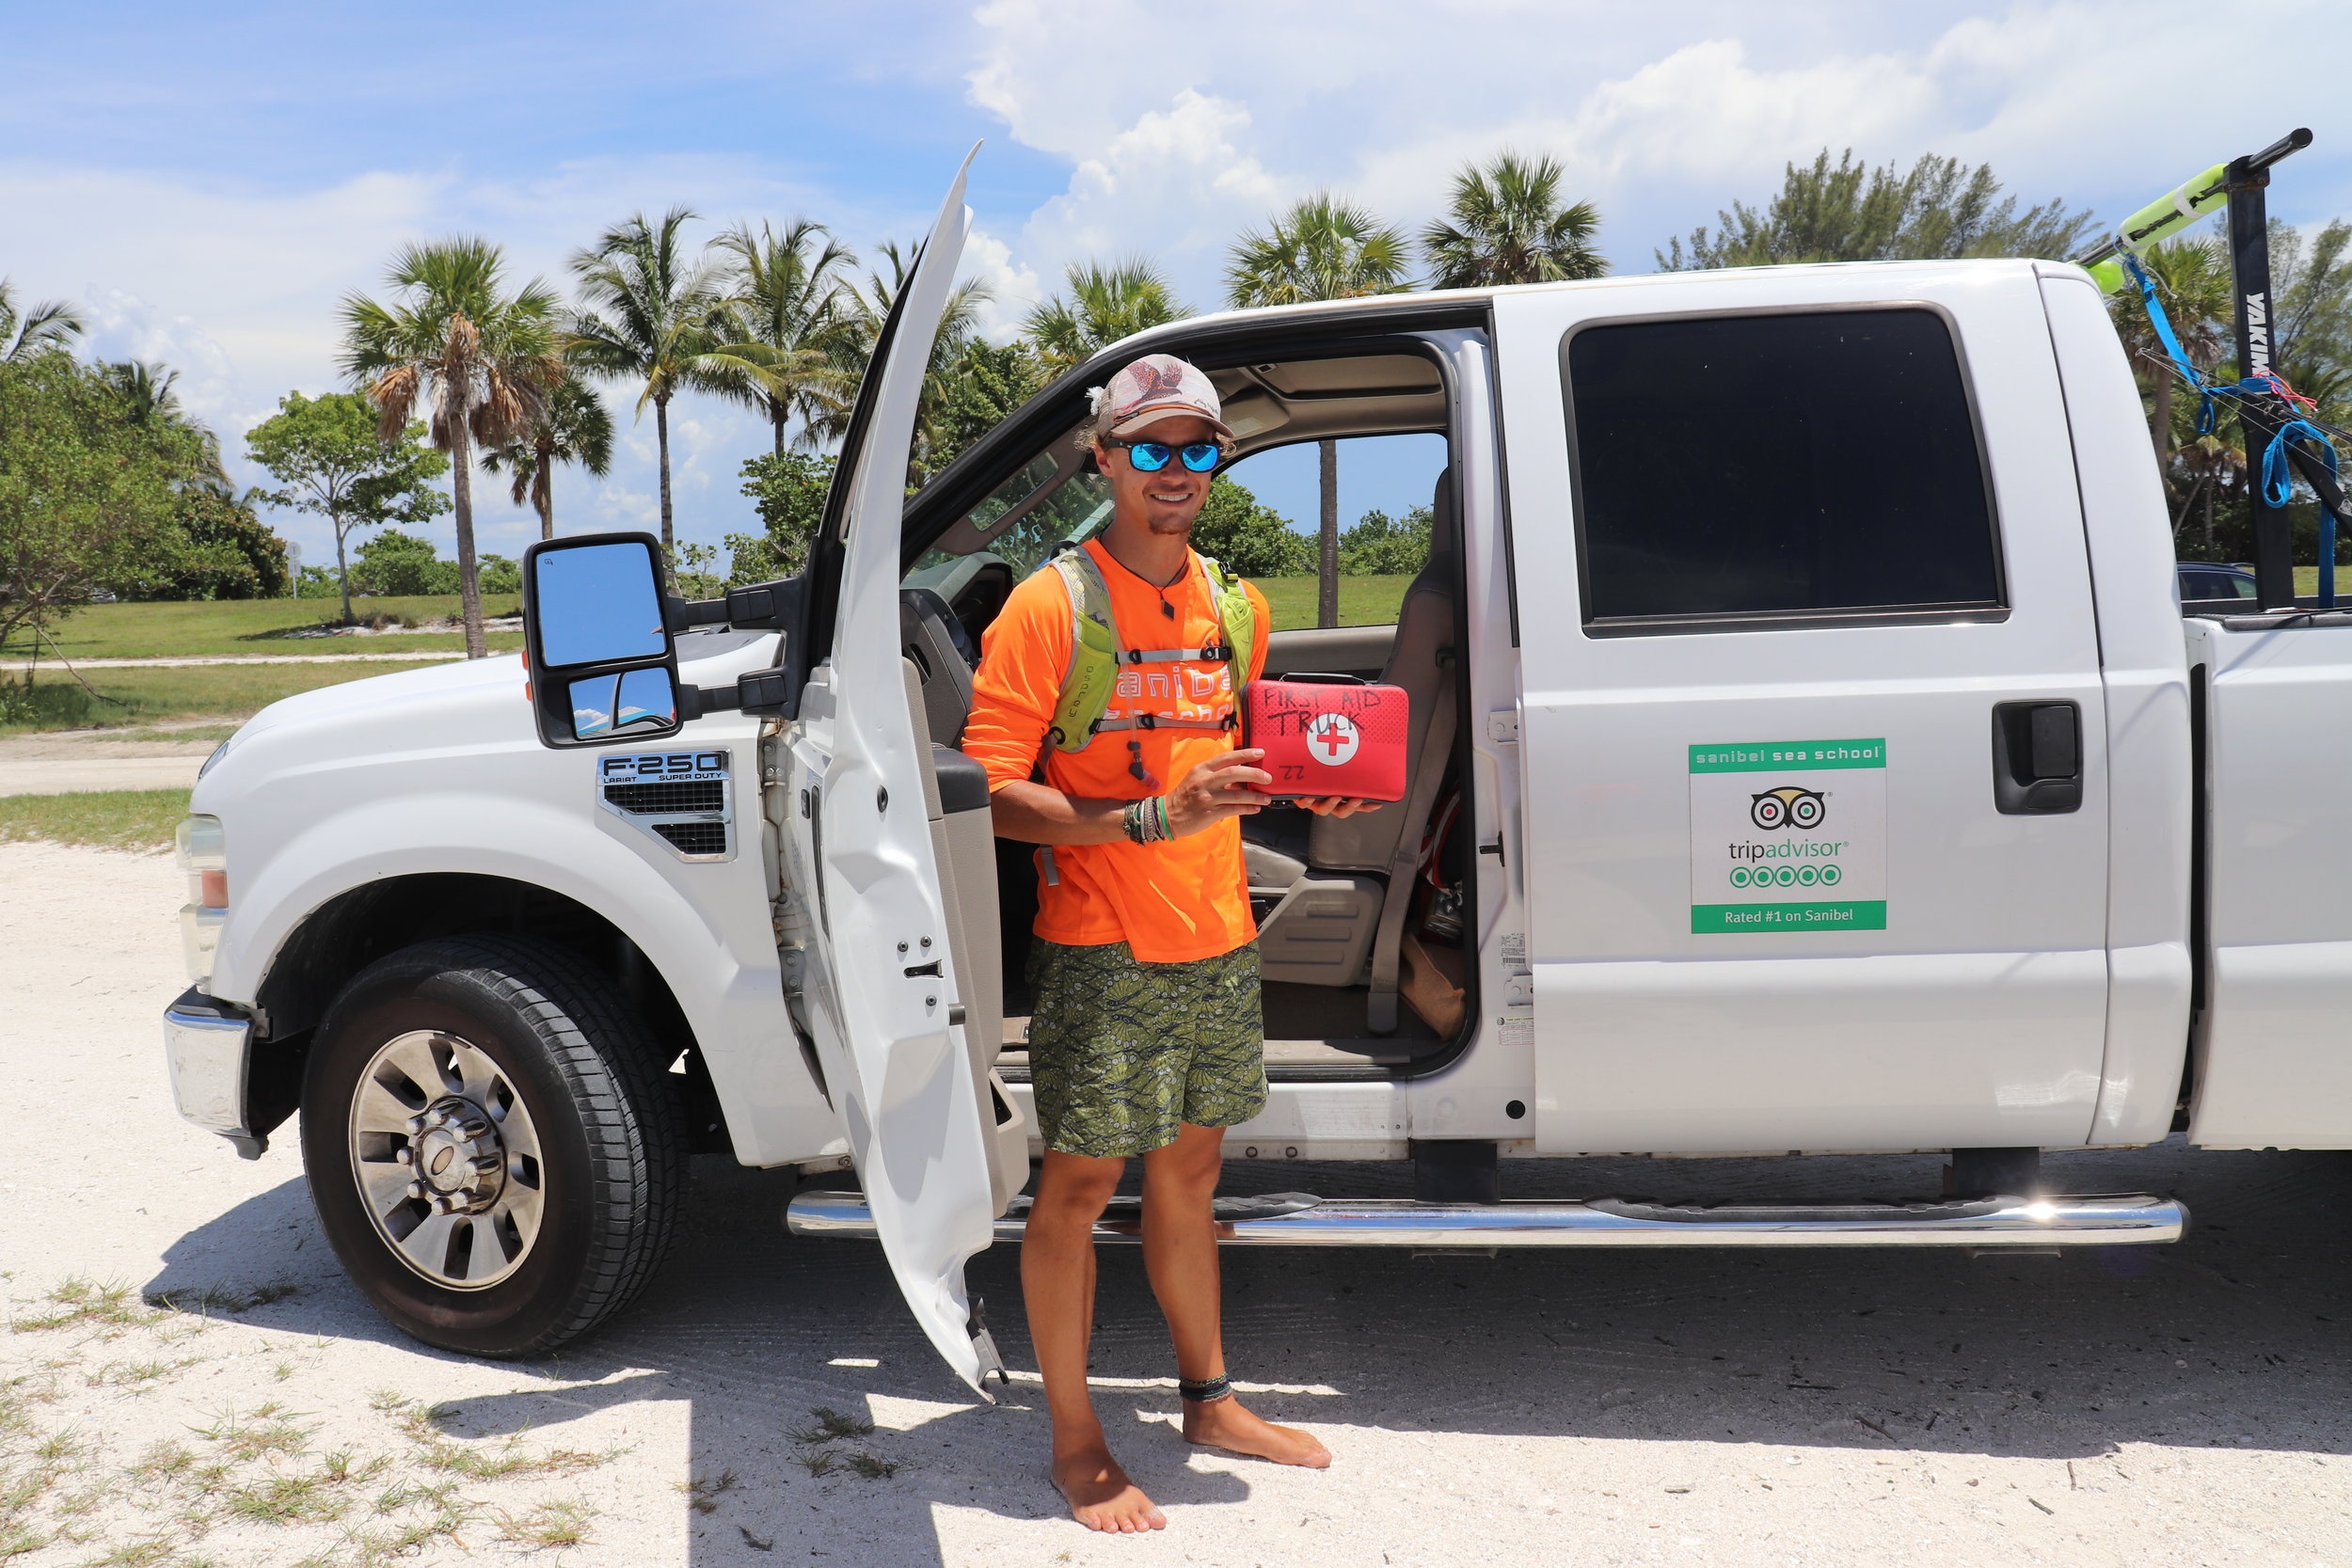 Sanibel Sea School's educators, including Emmett Horvath (pictured), would like to equip the organization's vehicles and boats with AEDs.